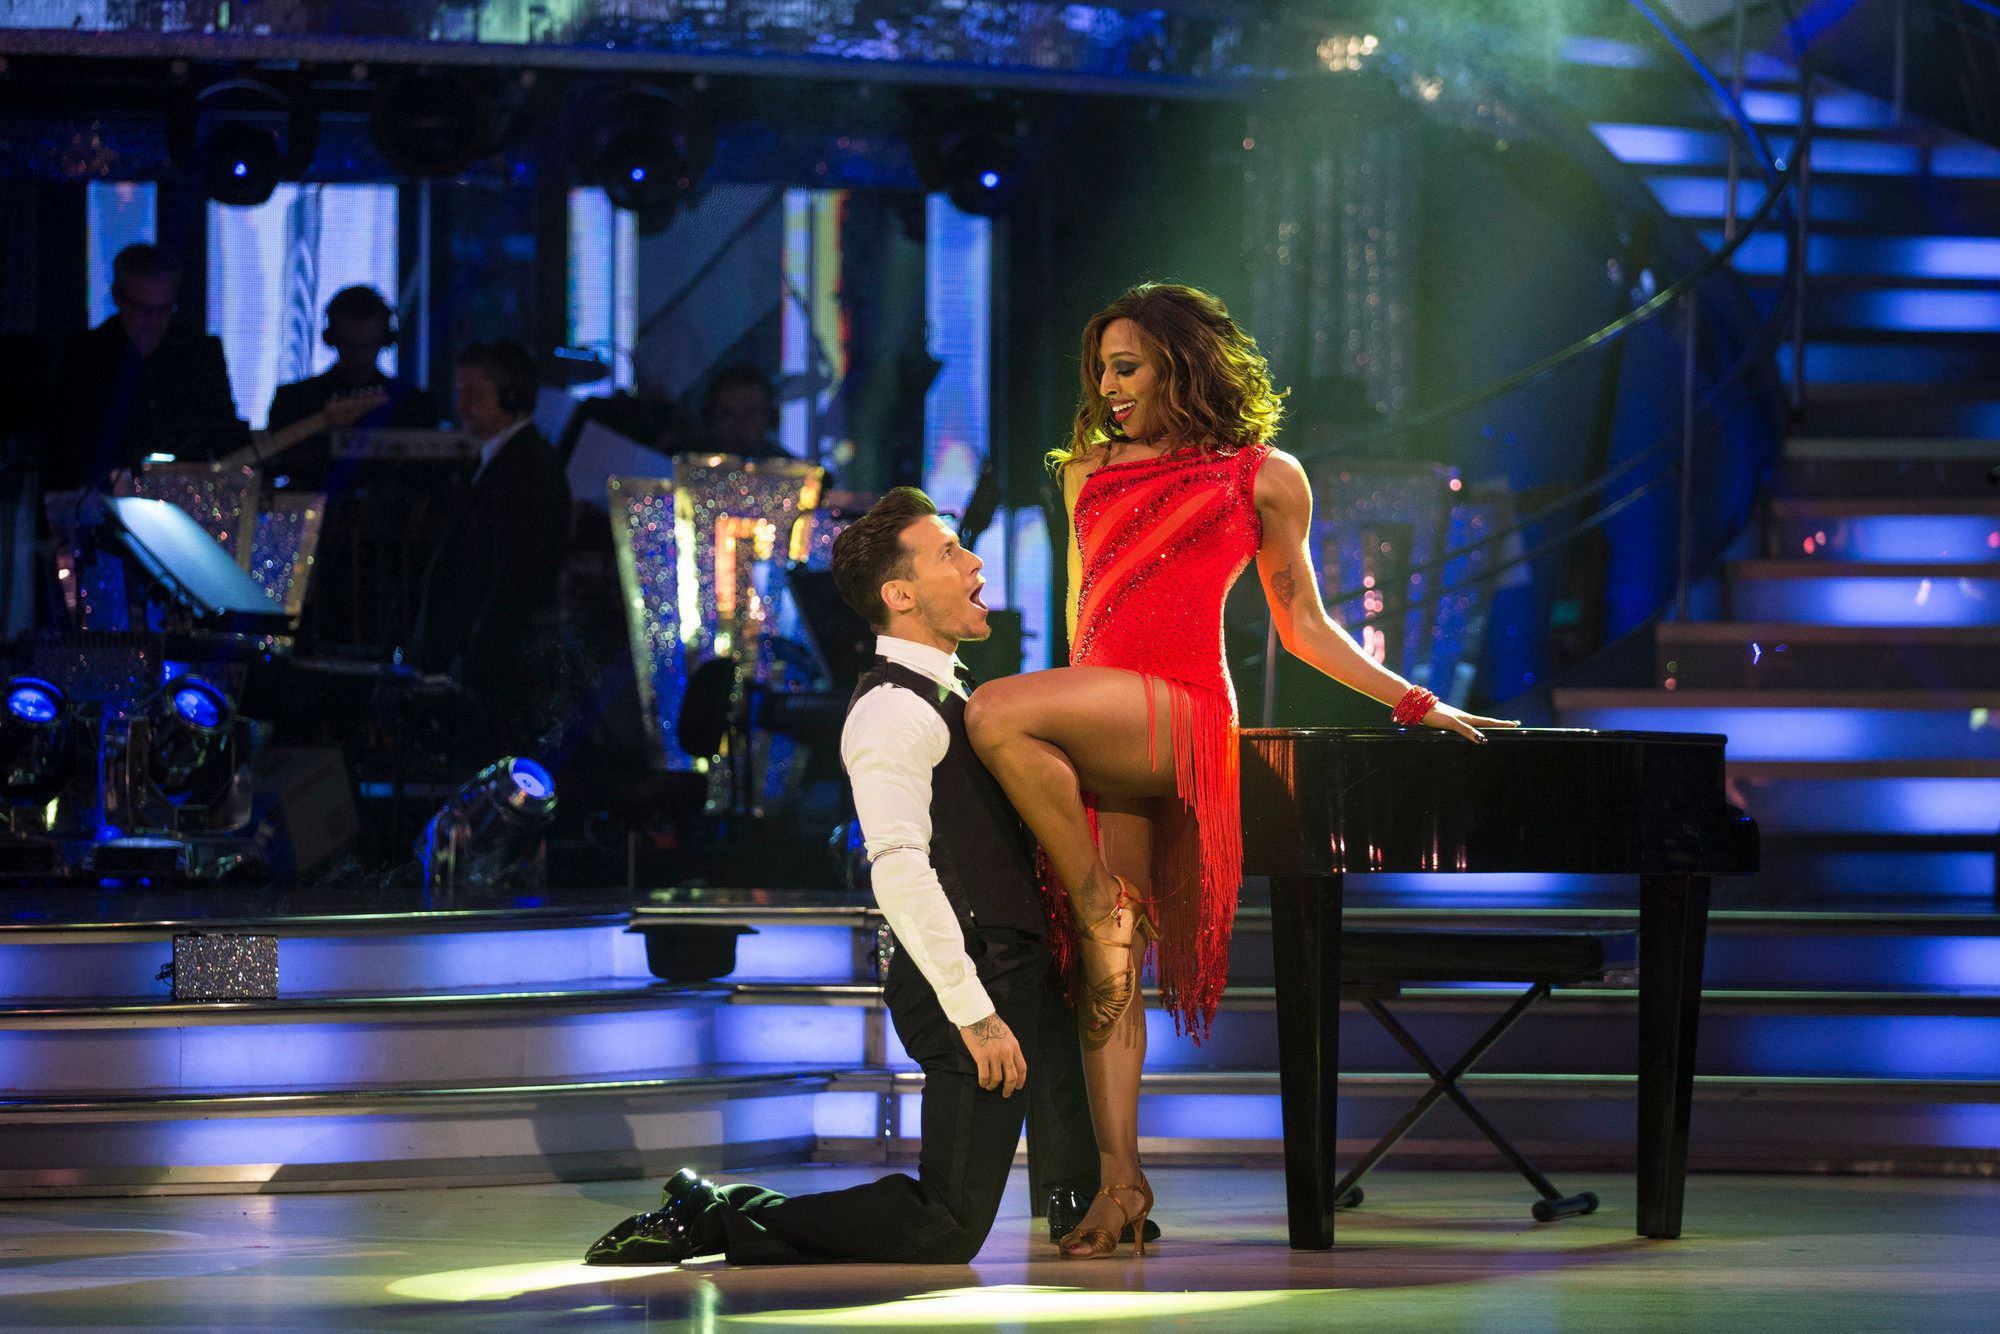 Alexandra Burke Has A Big Challenge On Her Hands For  This Week's 'Strictly Come Dancing' Live